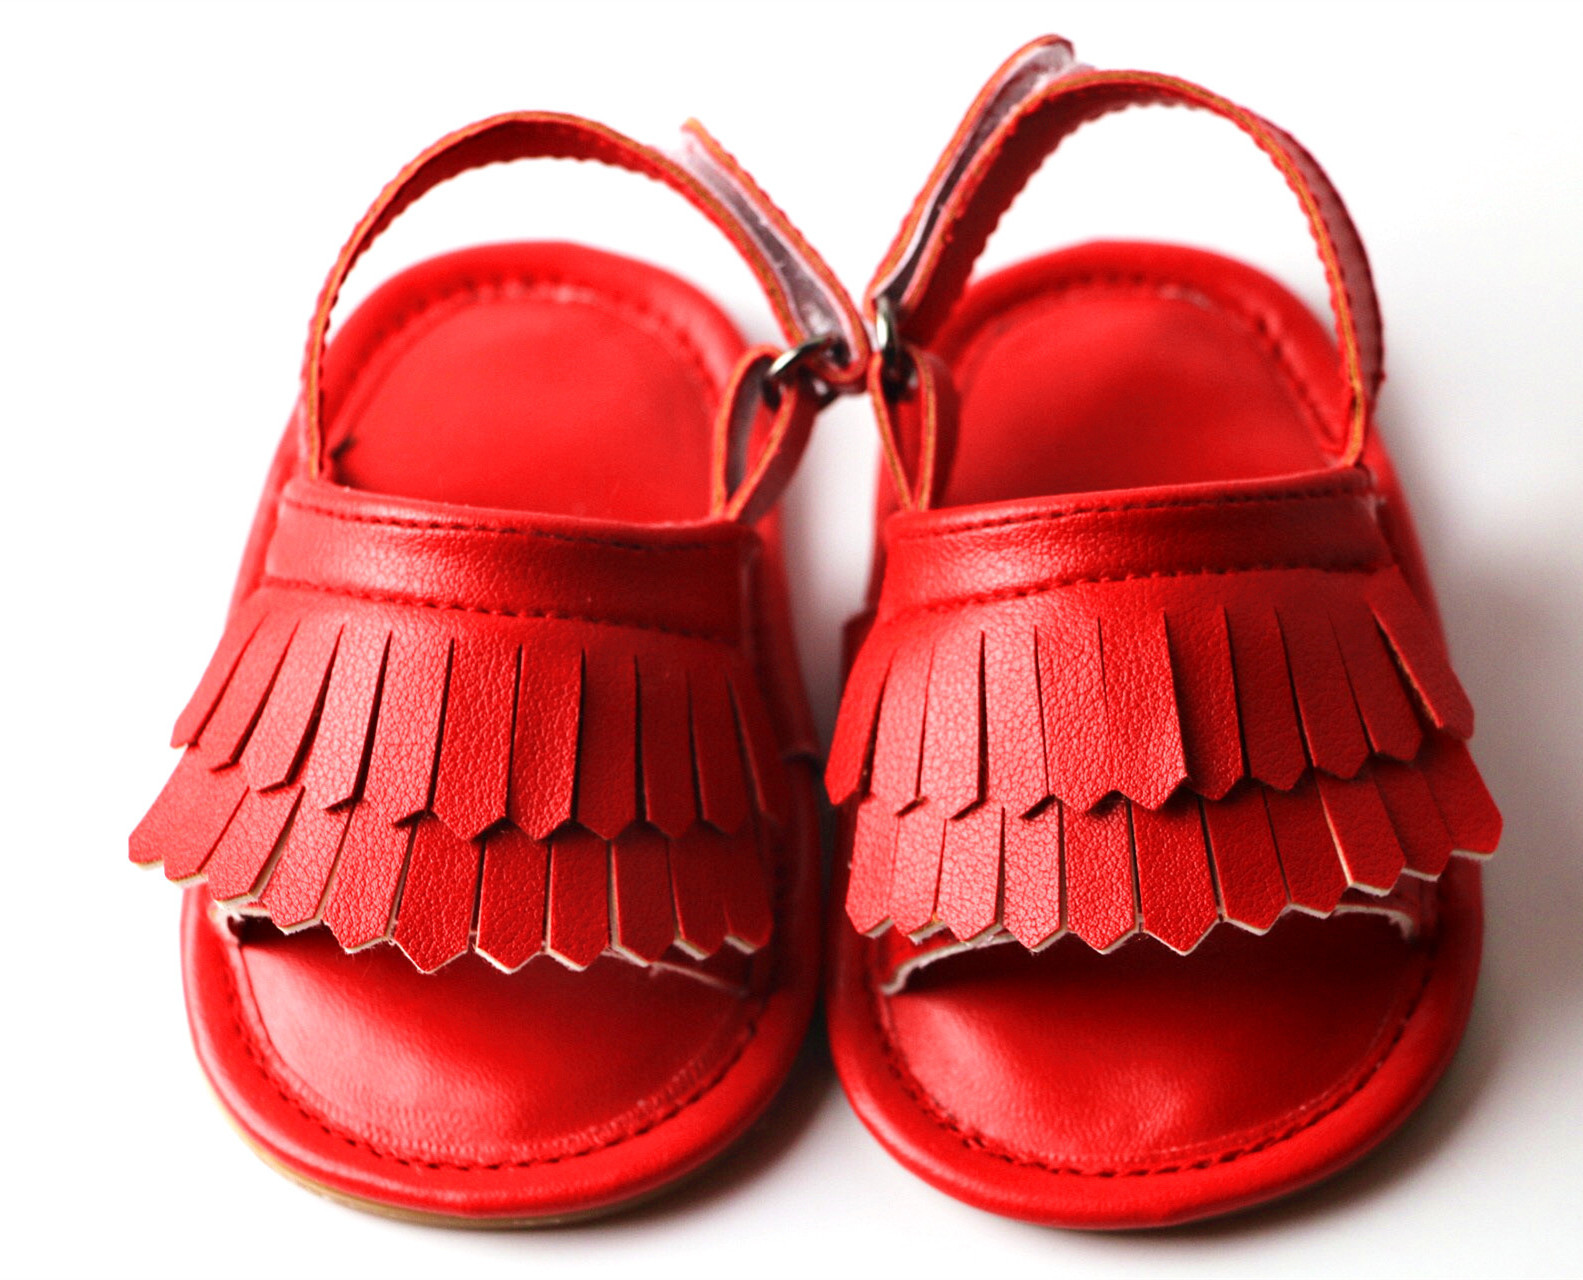 46f6423bcc4a 2018 Summer Children s Shoes Manufacturers Selling New Tassel Baby Shoes  Soft Baby Moccasins